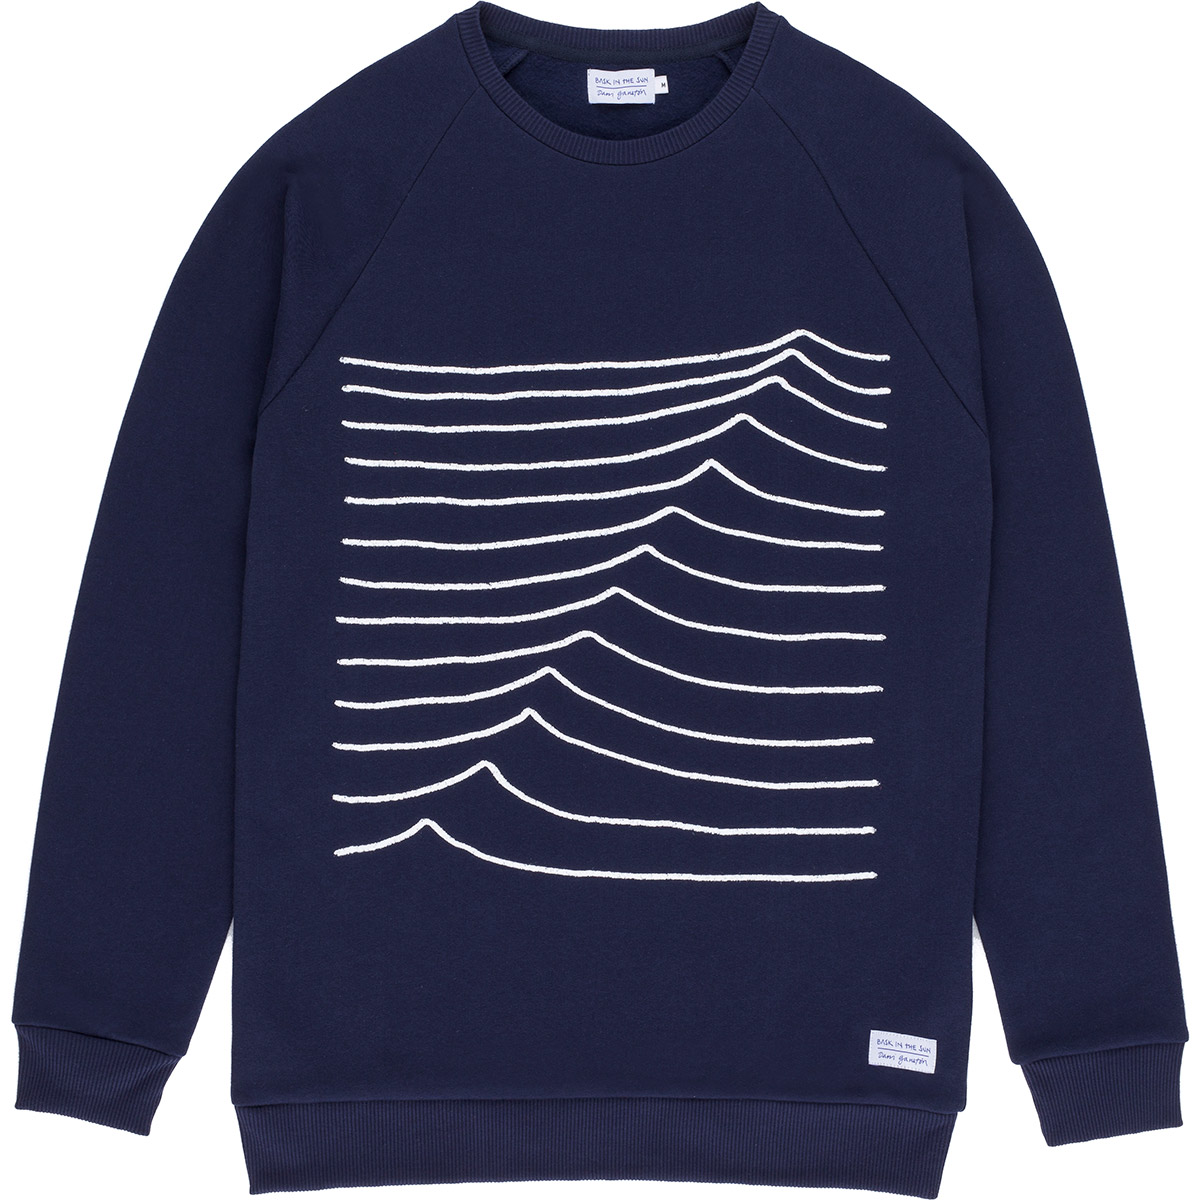 Sweat en coton bio navy swell - Bask in the Sun num 0